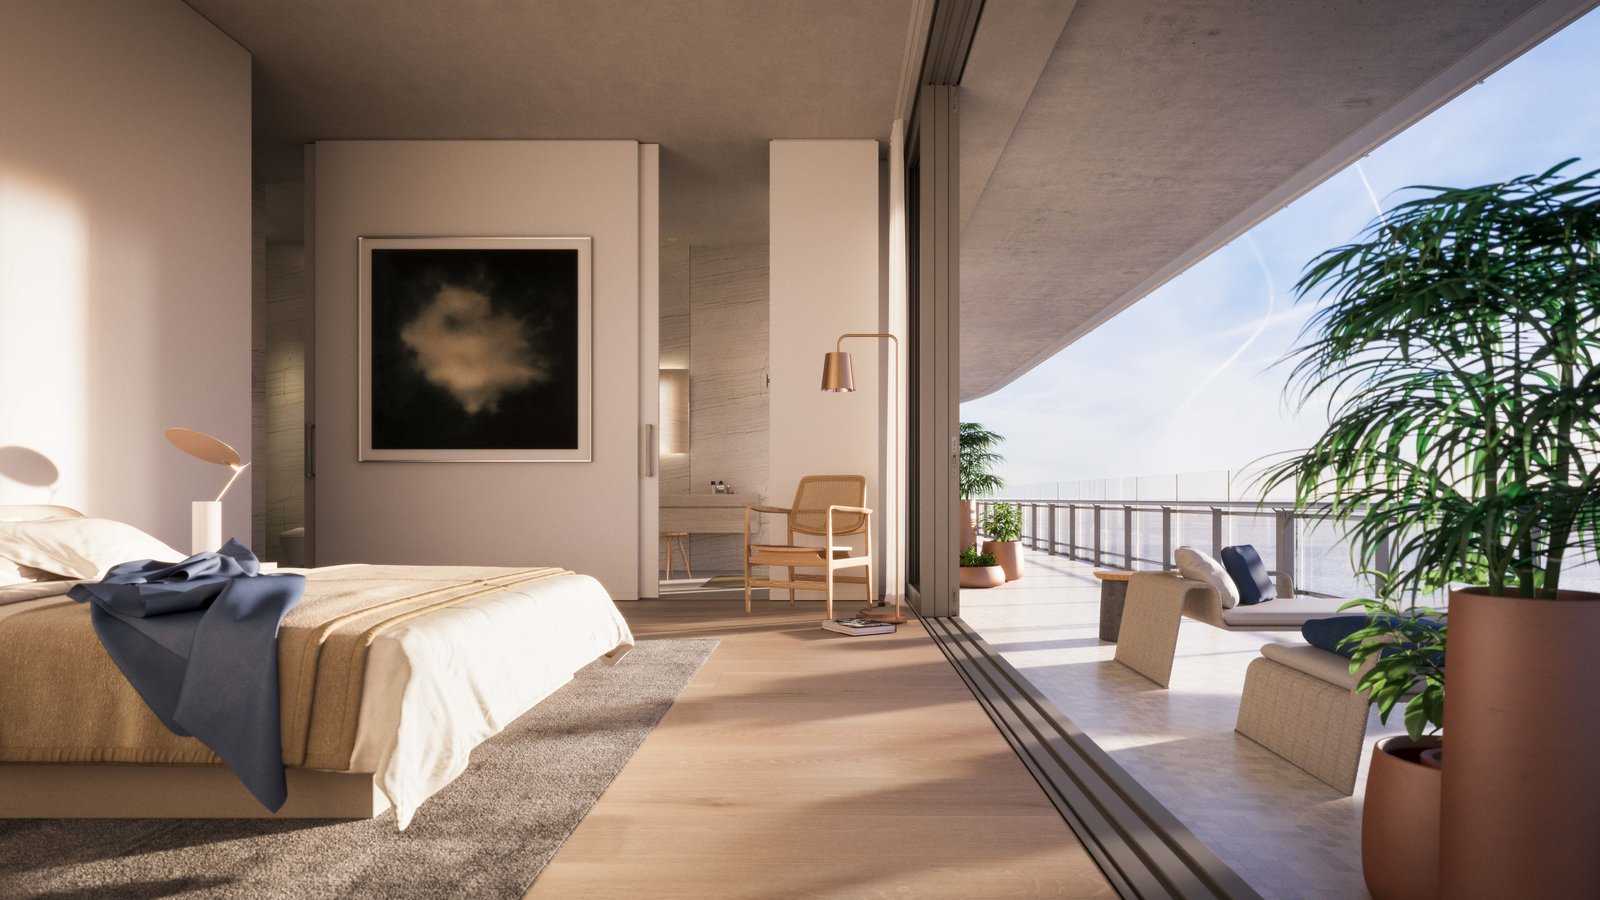 Inside, all the apartments were designed so that upon arrival, the resident is connected to the view of the ocean and Miami.